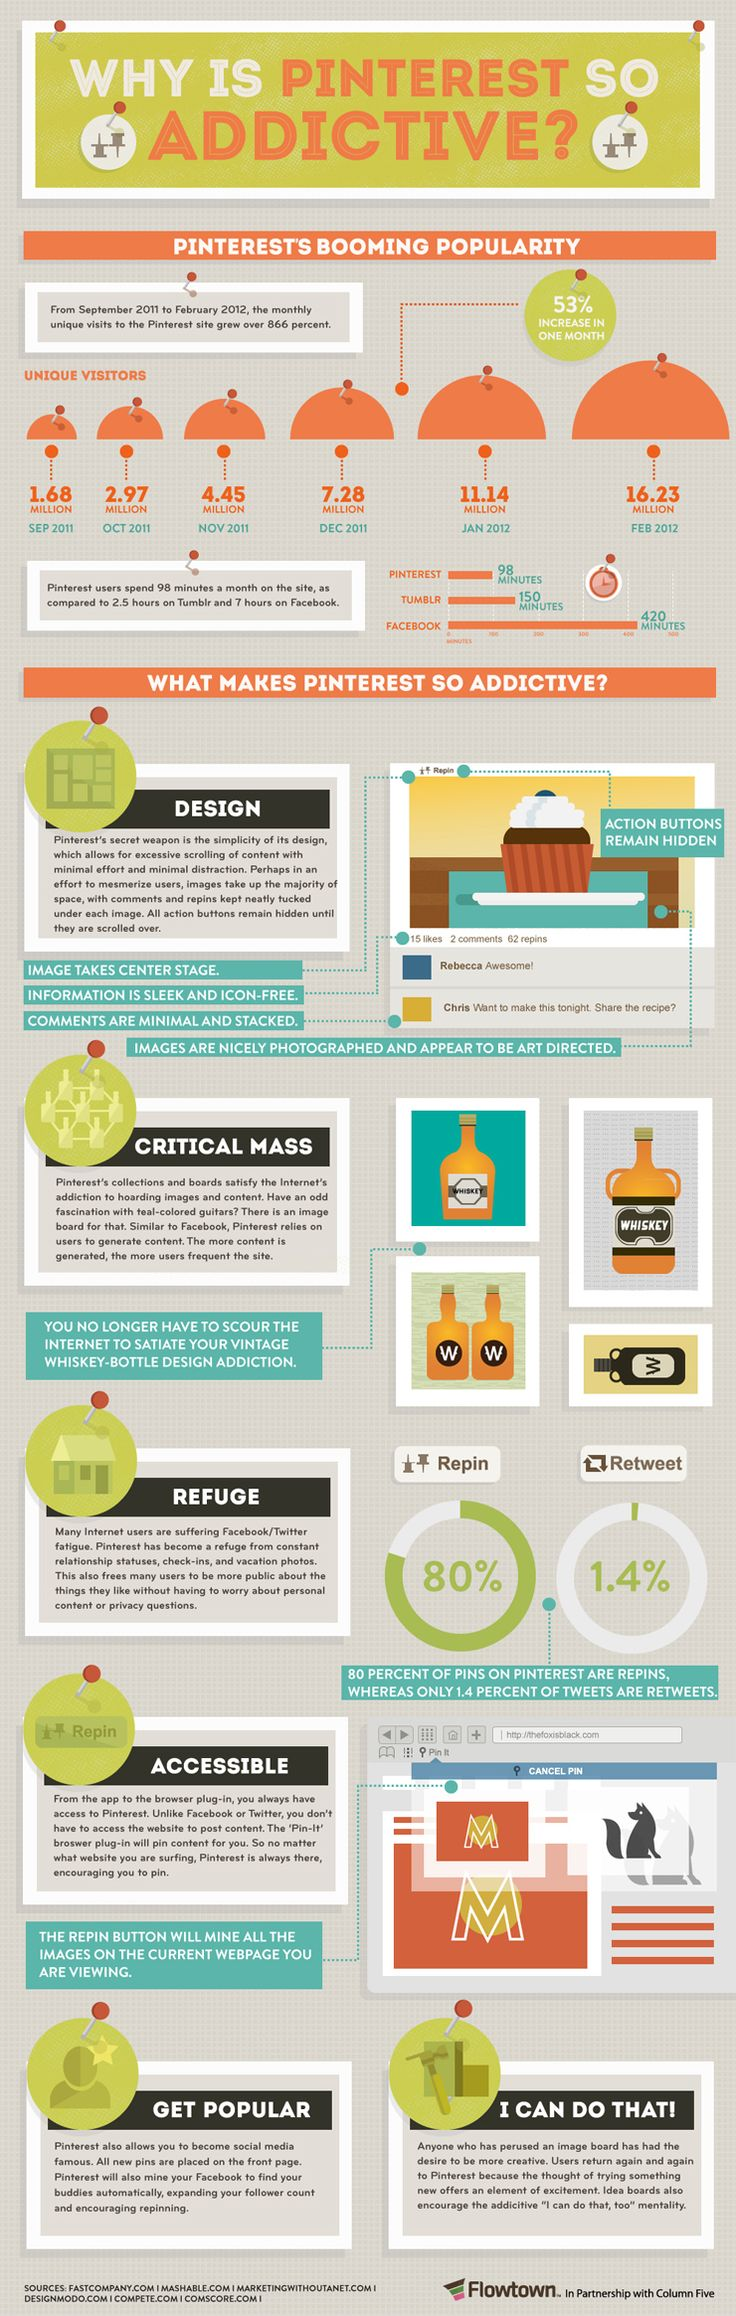 Why Is Pinterest So Addictive? an Infographic